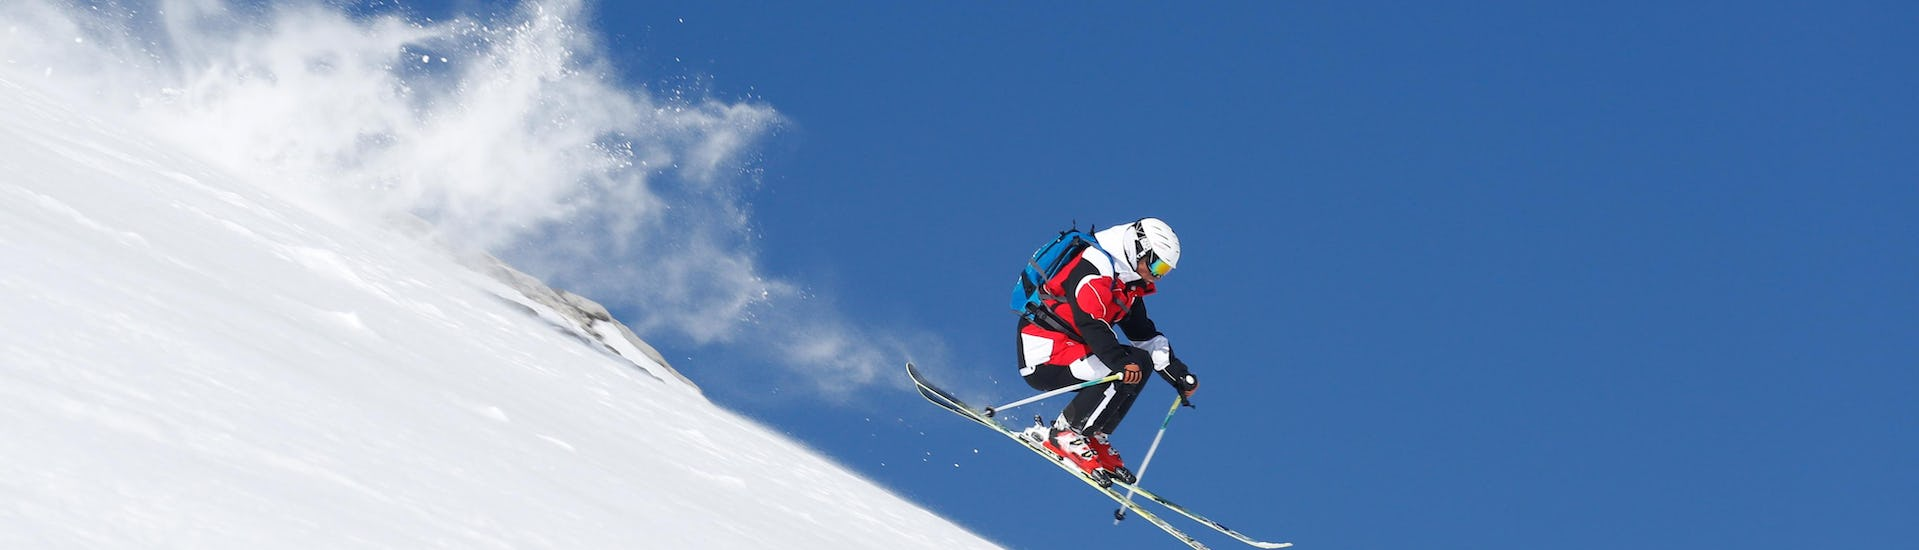 "Ski Lessons ""No Limits"" for Teens (13-17 years)"